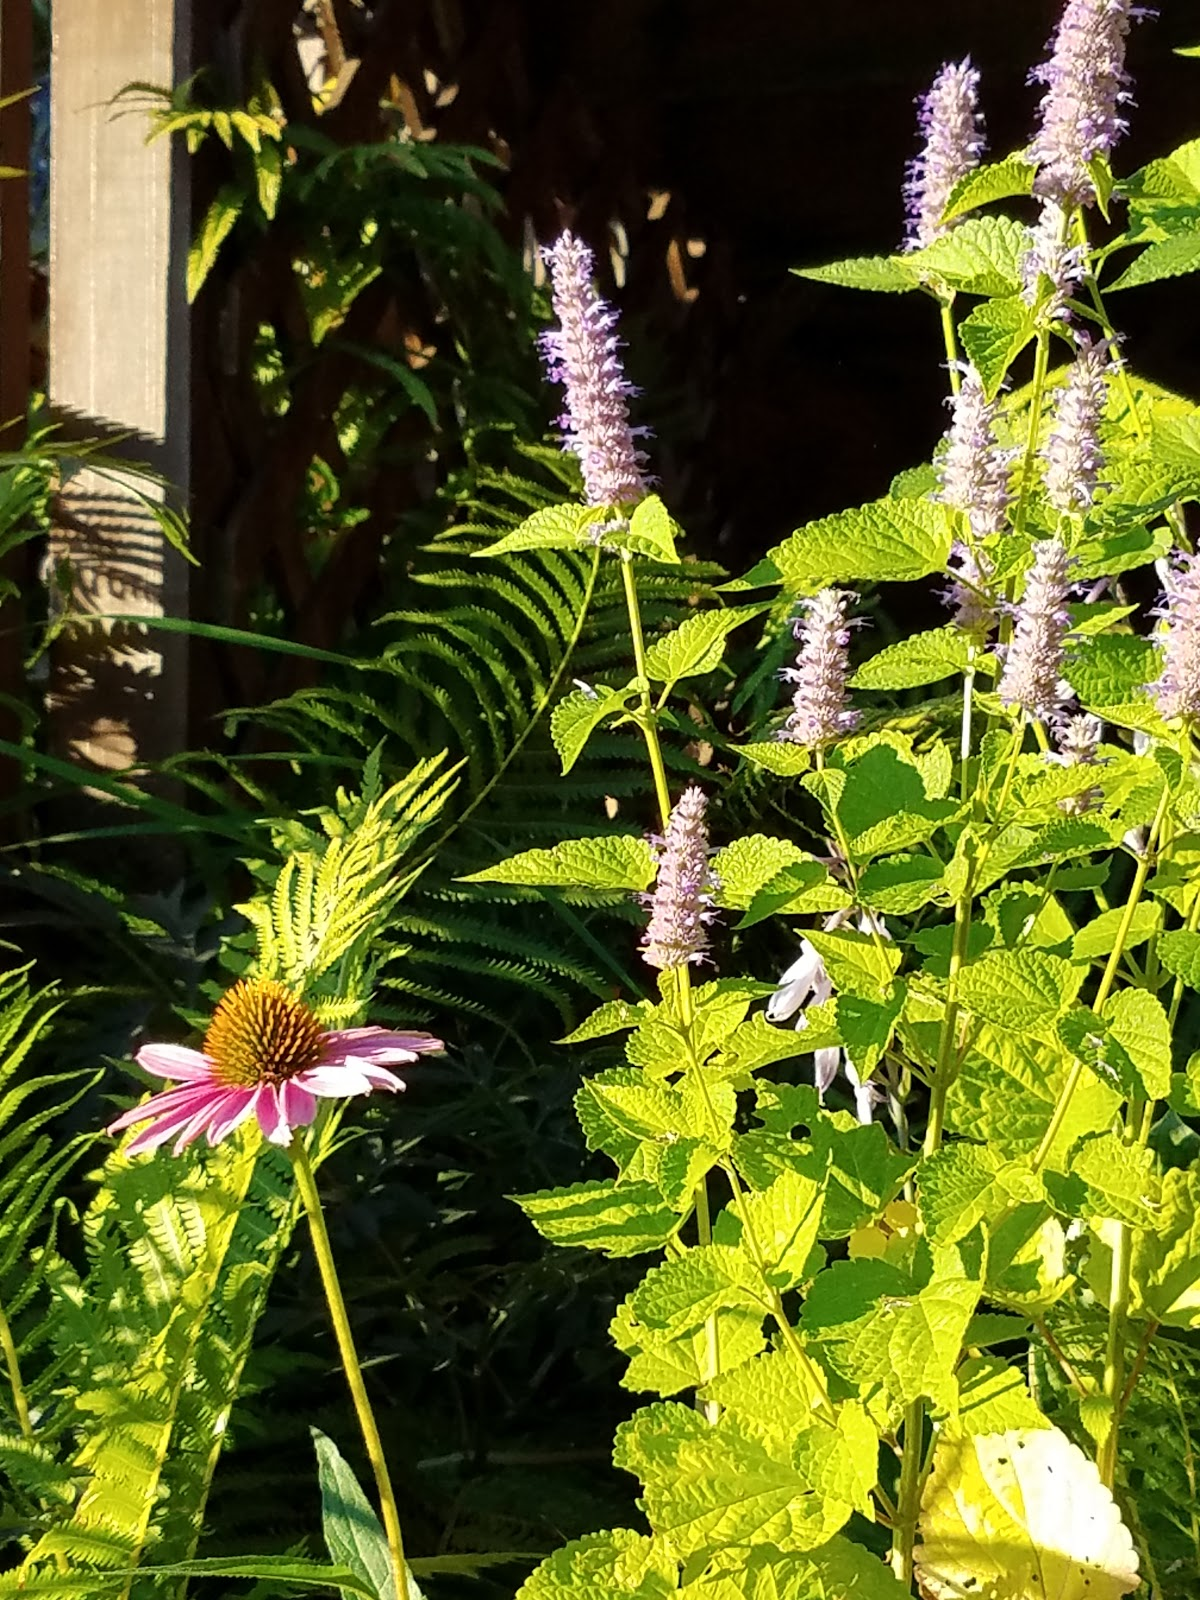 Pink coneflower planted next to lavender anise hyssop (Agastache foeniculum) in a home garden.